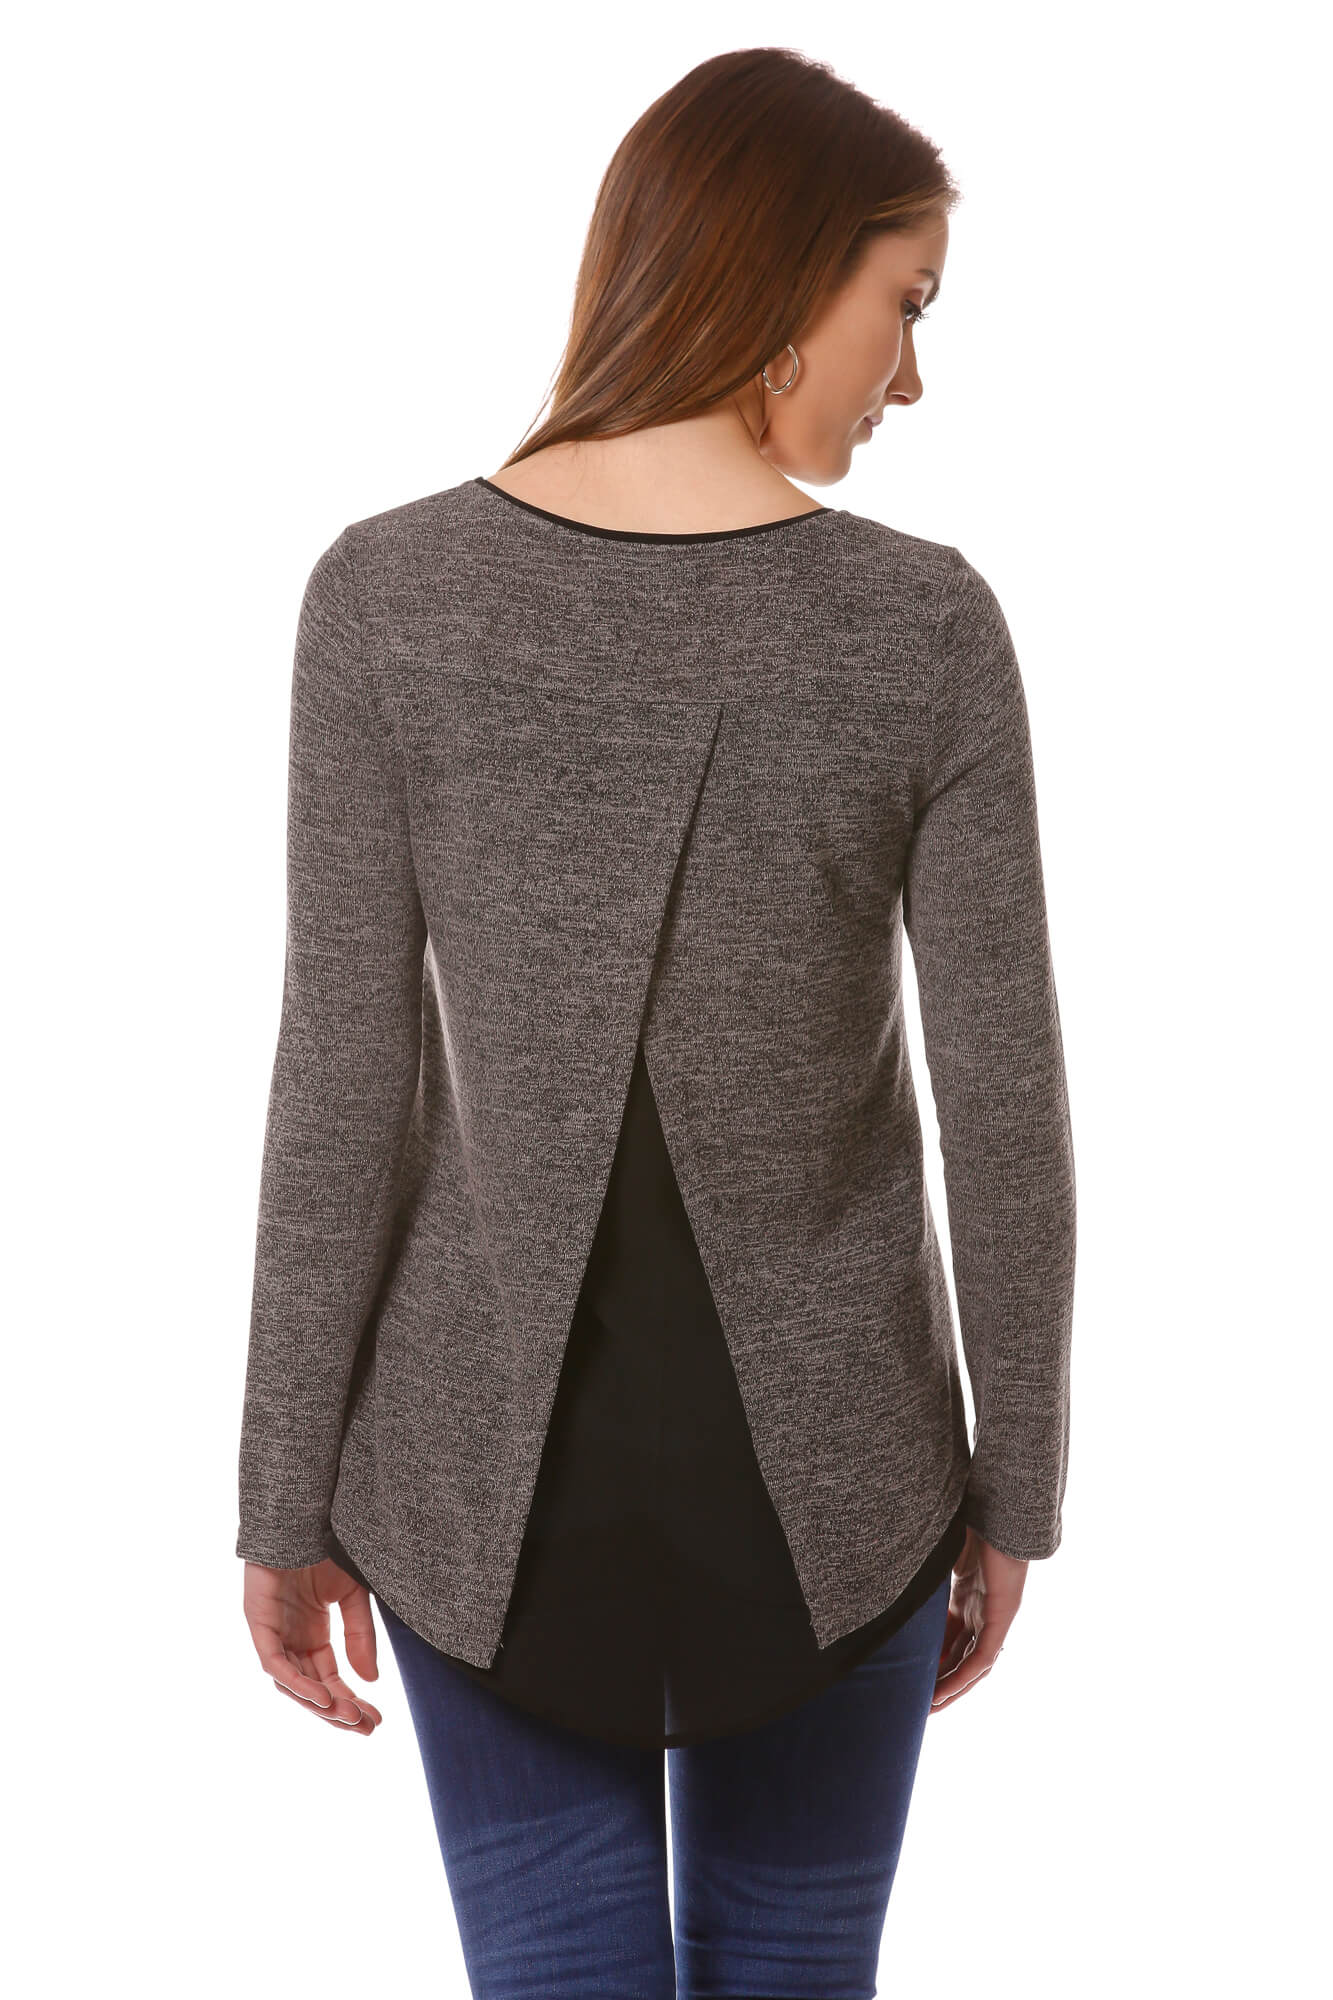 Women's Charcoal Open Back Layered Top | Cozy top for Fall/Winter | Neesha Fashion